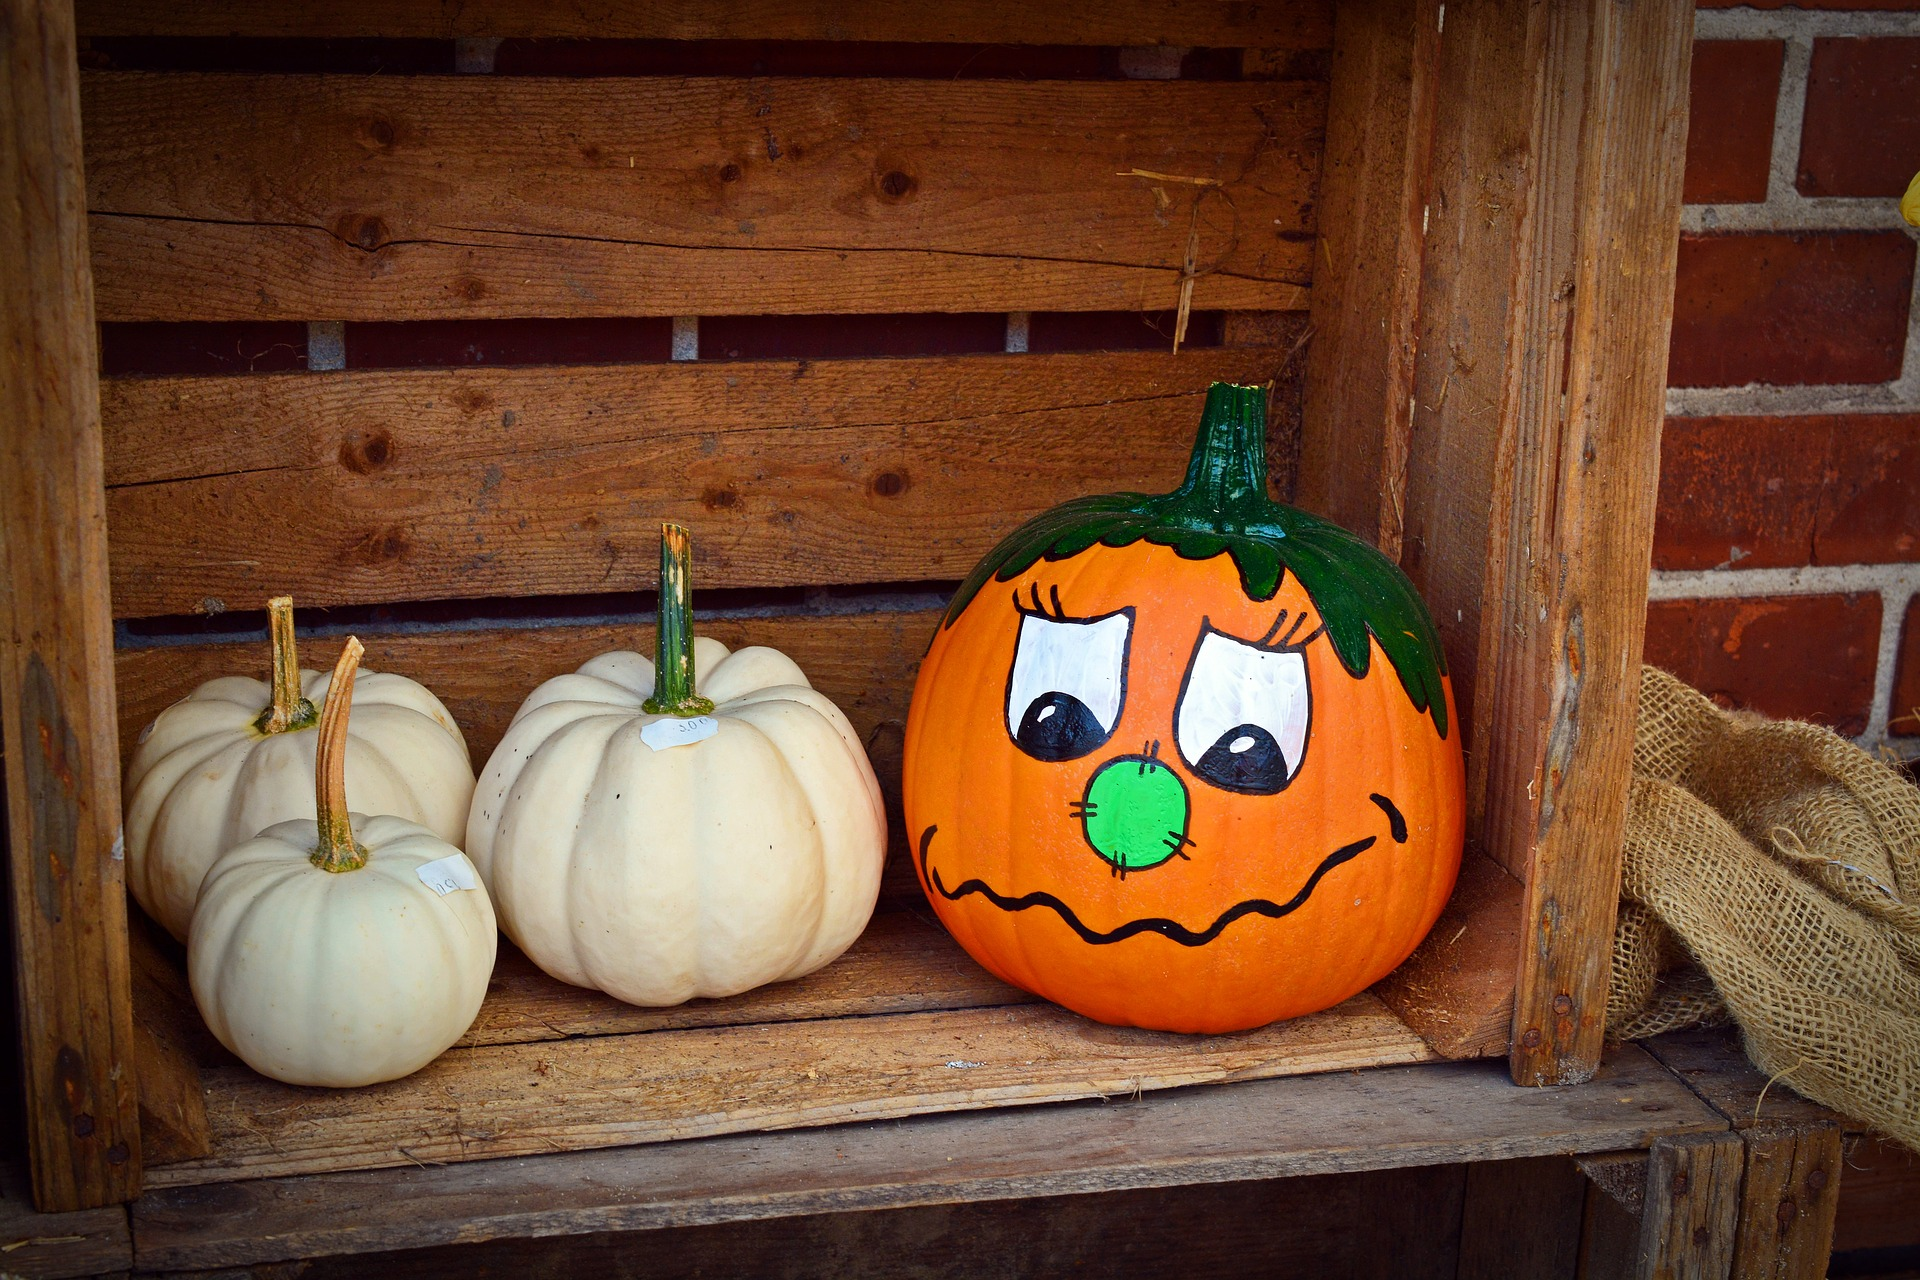 Kids Can Pick A Pumpkin To Paint At The Art Establishment